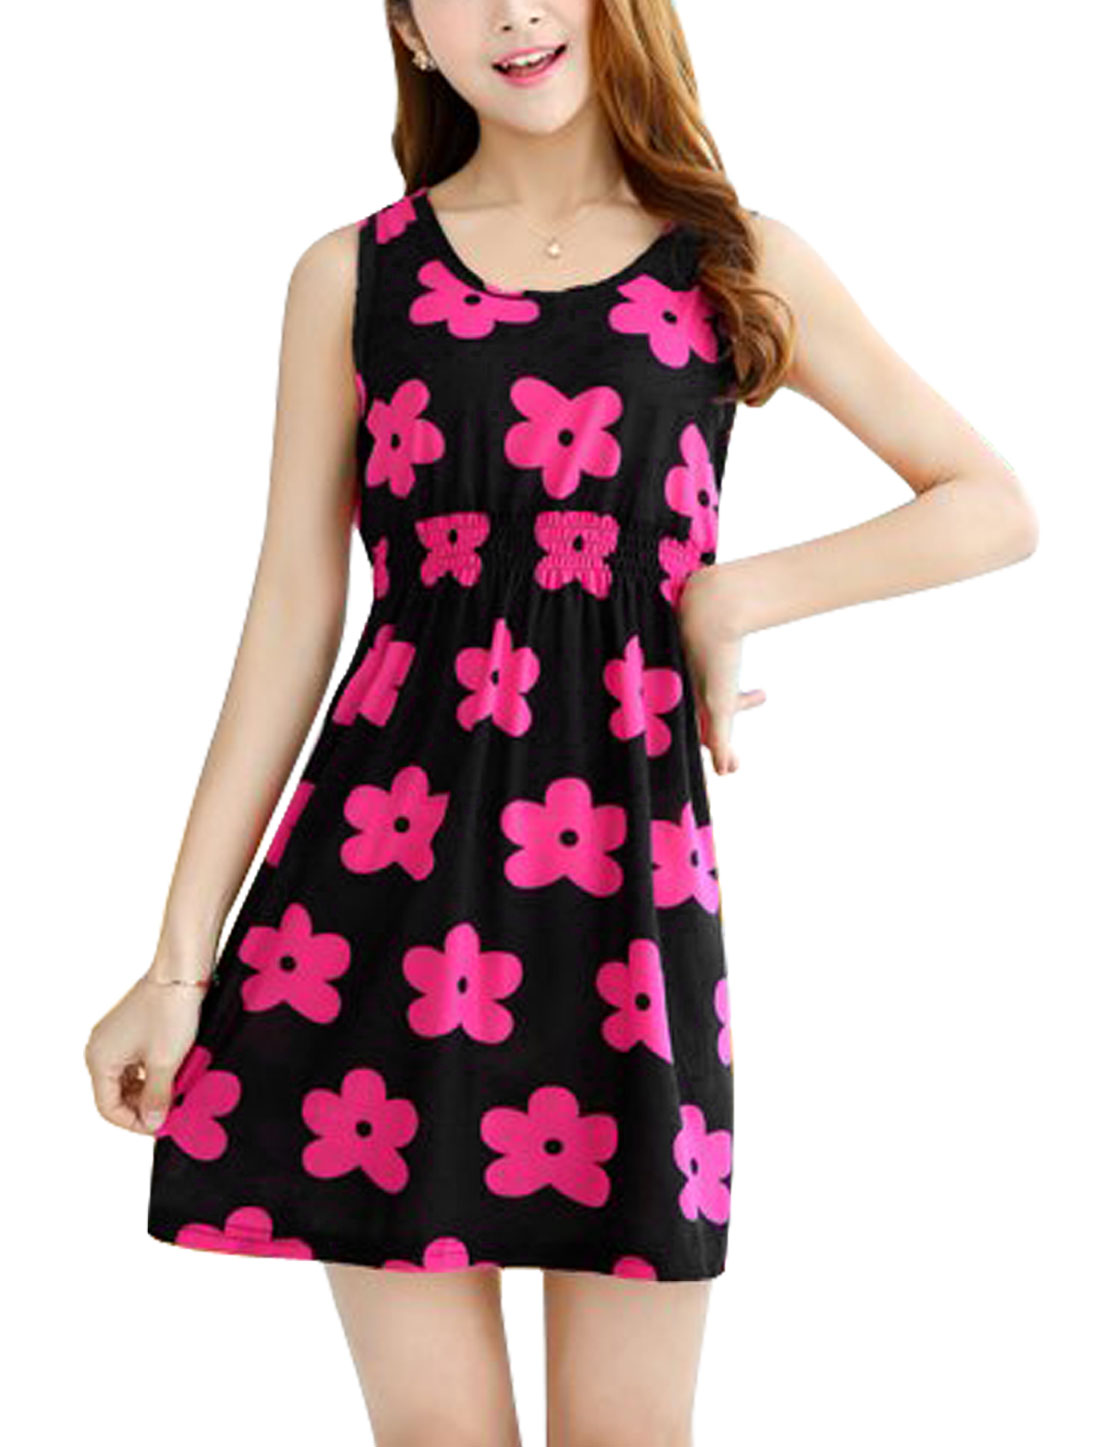 Lady Sleeveless Flower Prints Elastic Wasit A-Line Dress Black Fuchsia XS